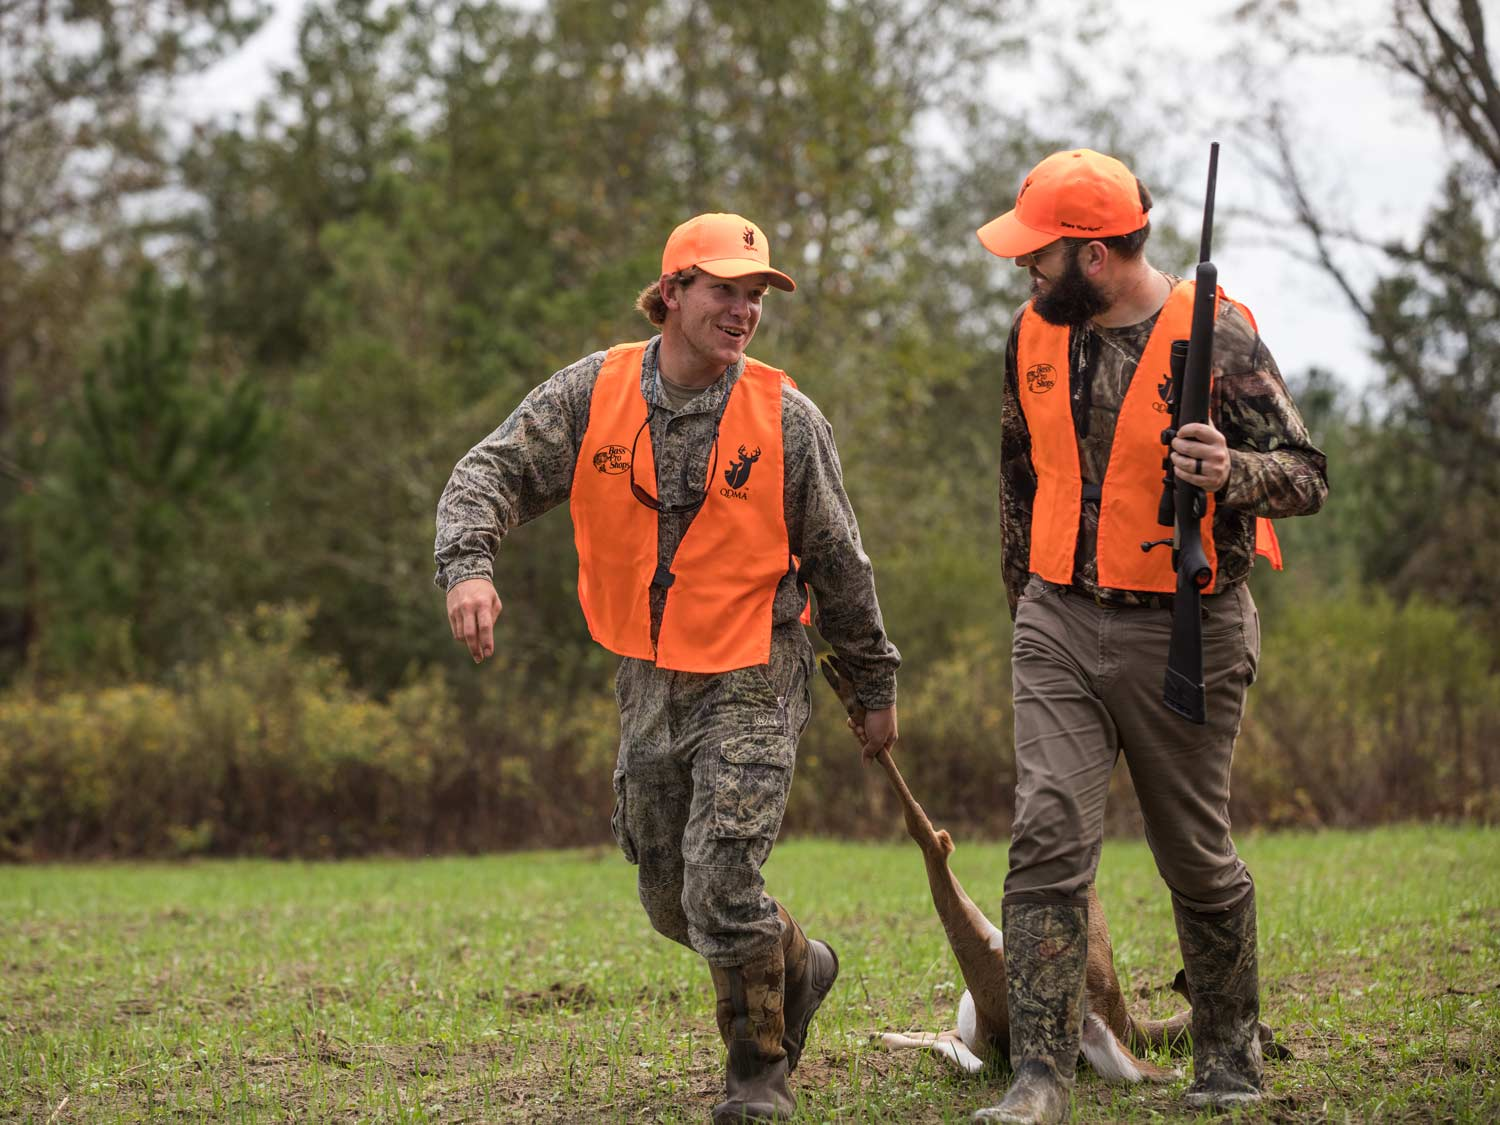 Two hunters in camo and orange vests drag a deer.